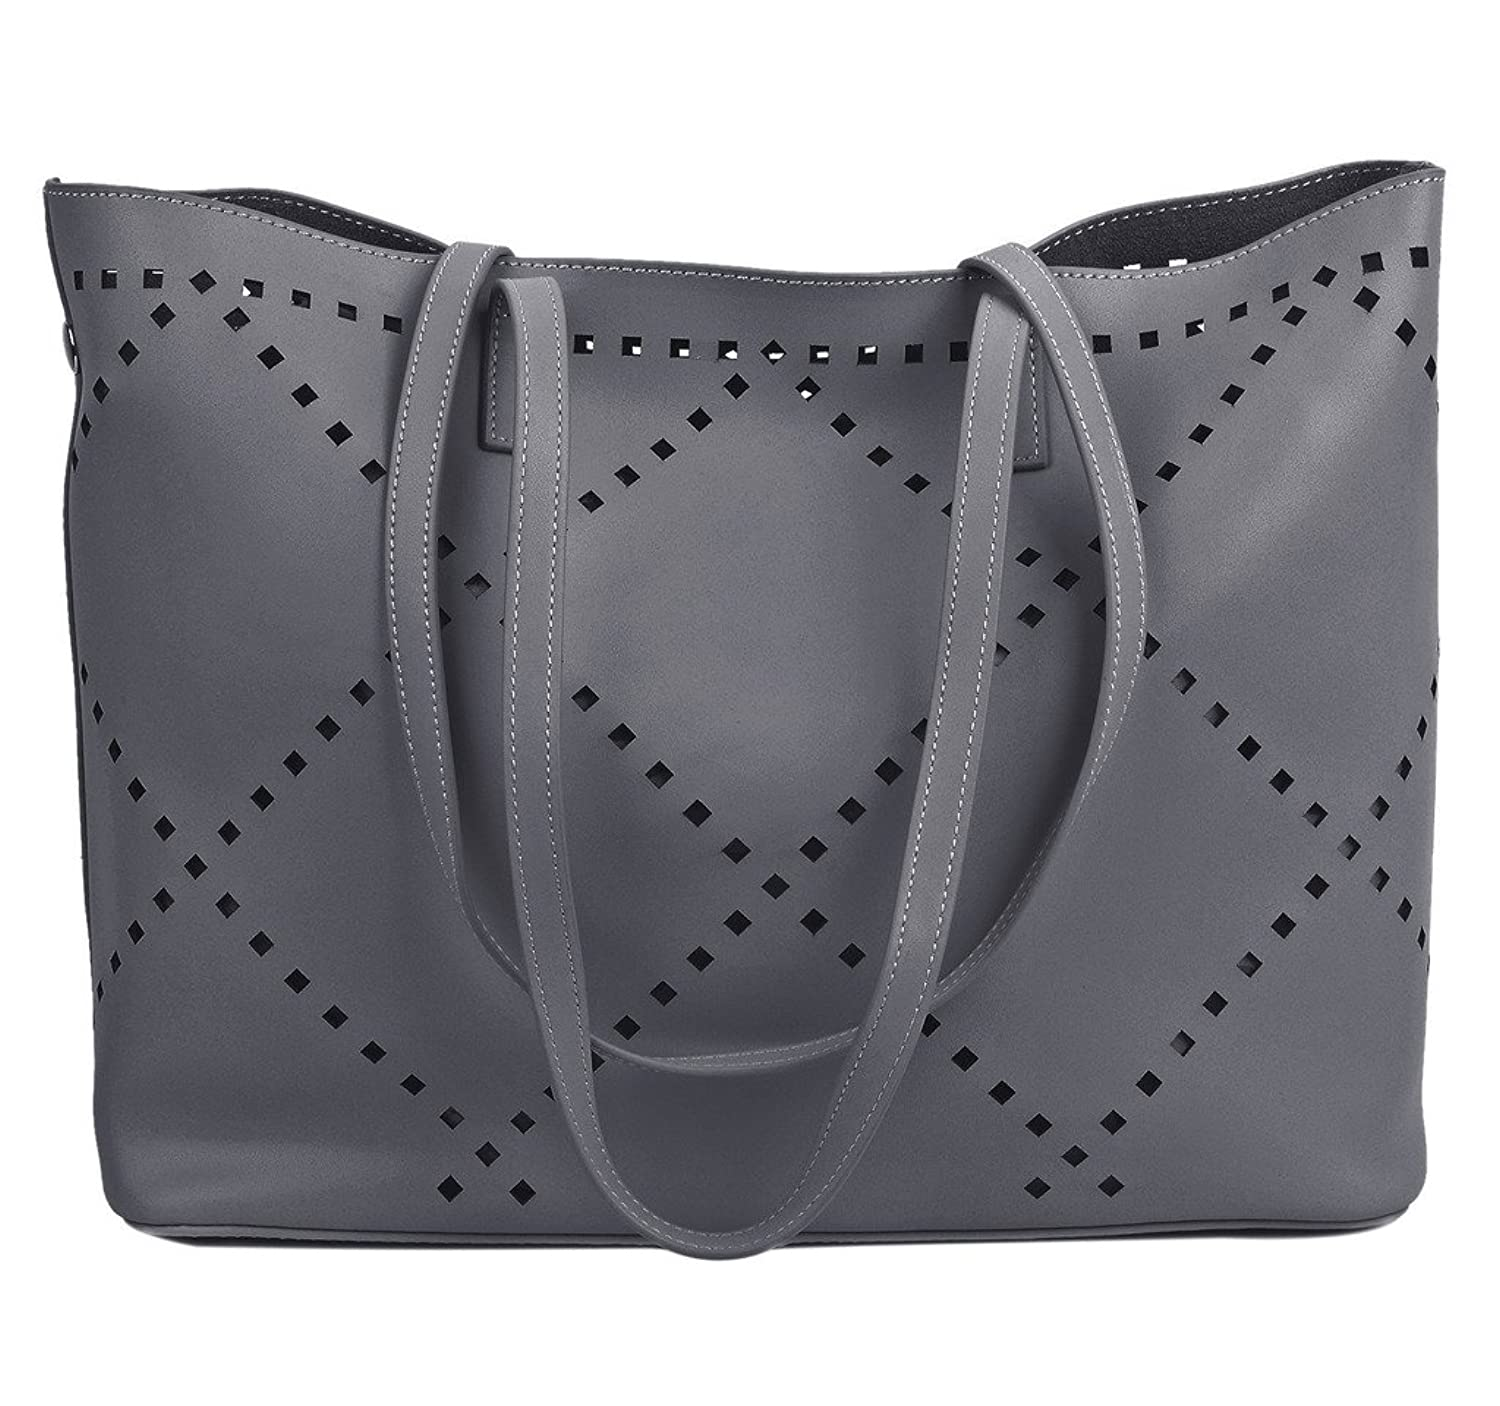 YALUXE Women's Urban Style Leather Tote Shoulder Bag